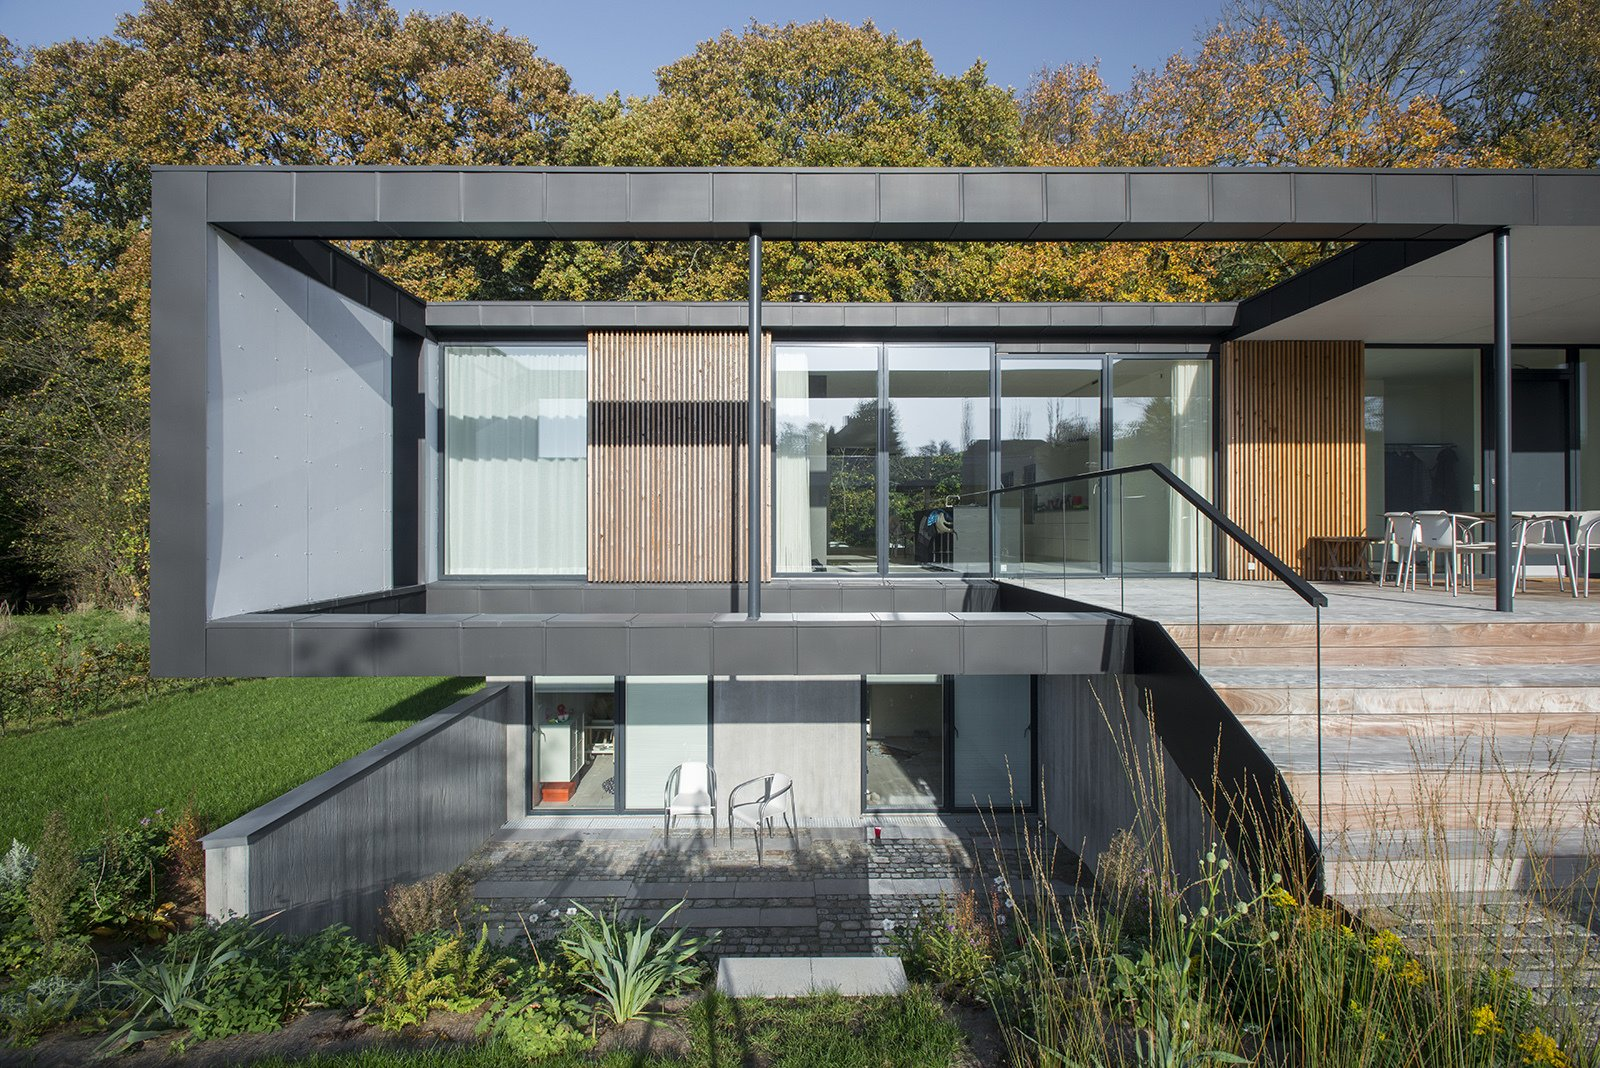 "Located in Aarhus, Denmark, Villa R is a minimalist, serene structure clad in zinc panels. ""The objective was to create a house that brings the forest inside through large glass panels—and create an ever-changing seasonal backdrop for the interior living spaces,"" stated the architecture firm, C.F. Møller, of the 3,200-square-foot abode.  Villa R by Diana Budds from Summer Getaways Amid the Trees"